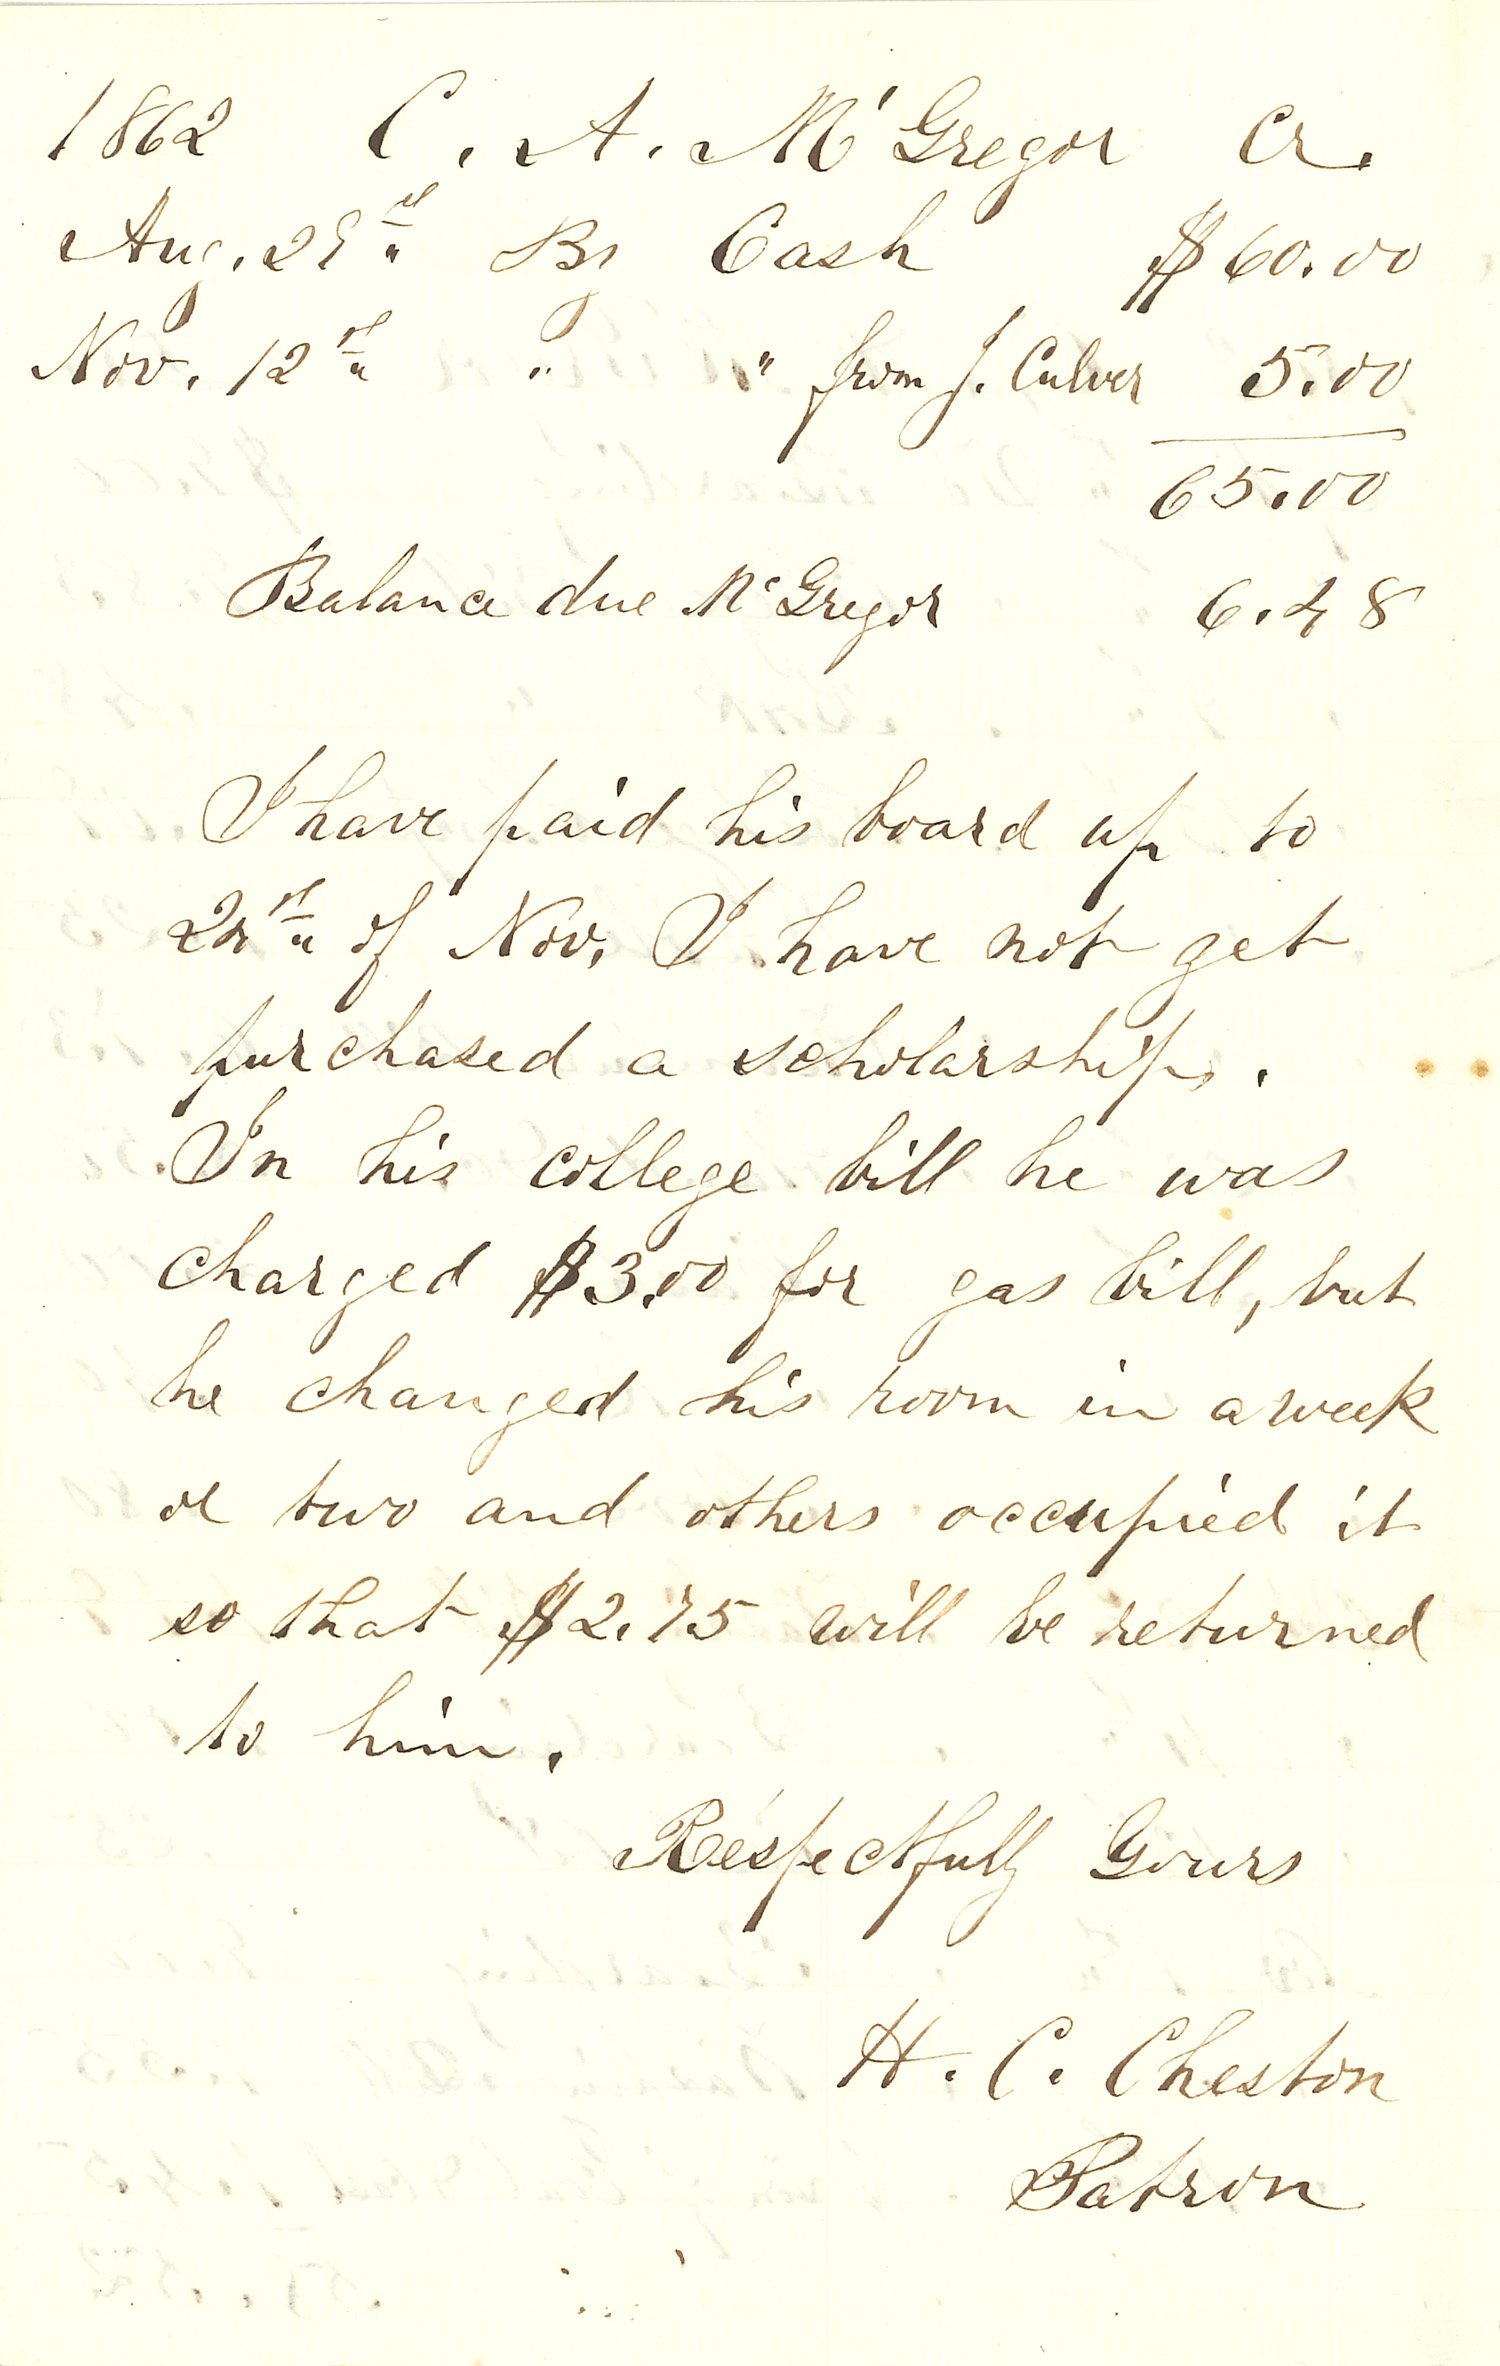 Joseph Culver Letter, December 8, 1862, Page 4